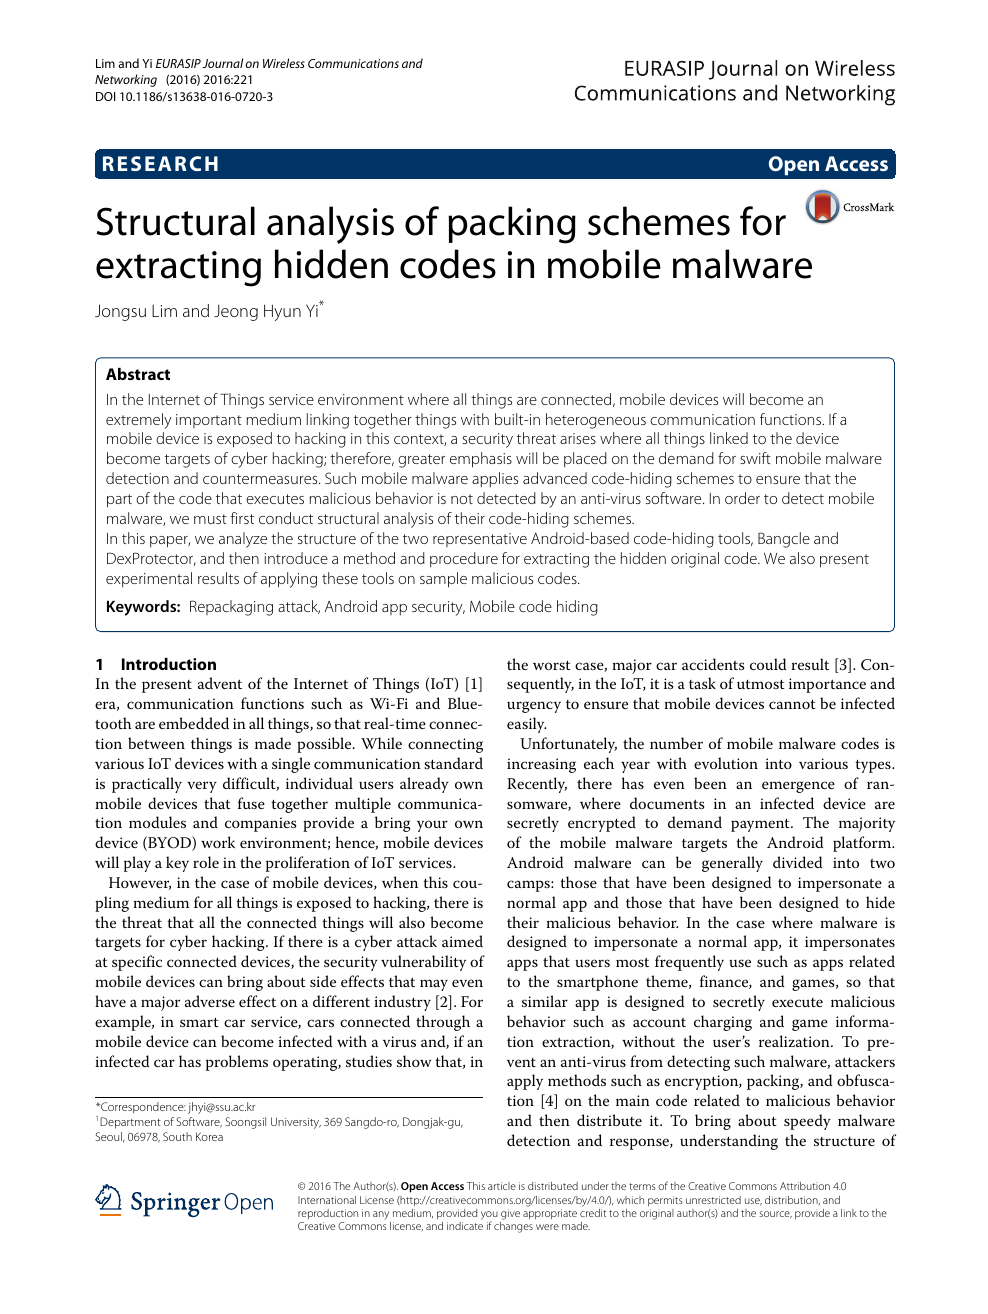 Structural analysis of packing schemes for extracting hidden codes